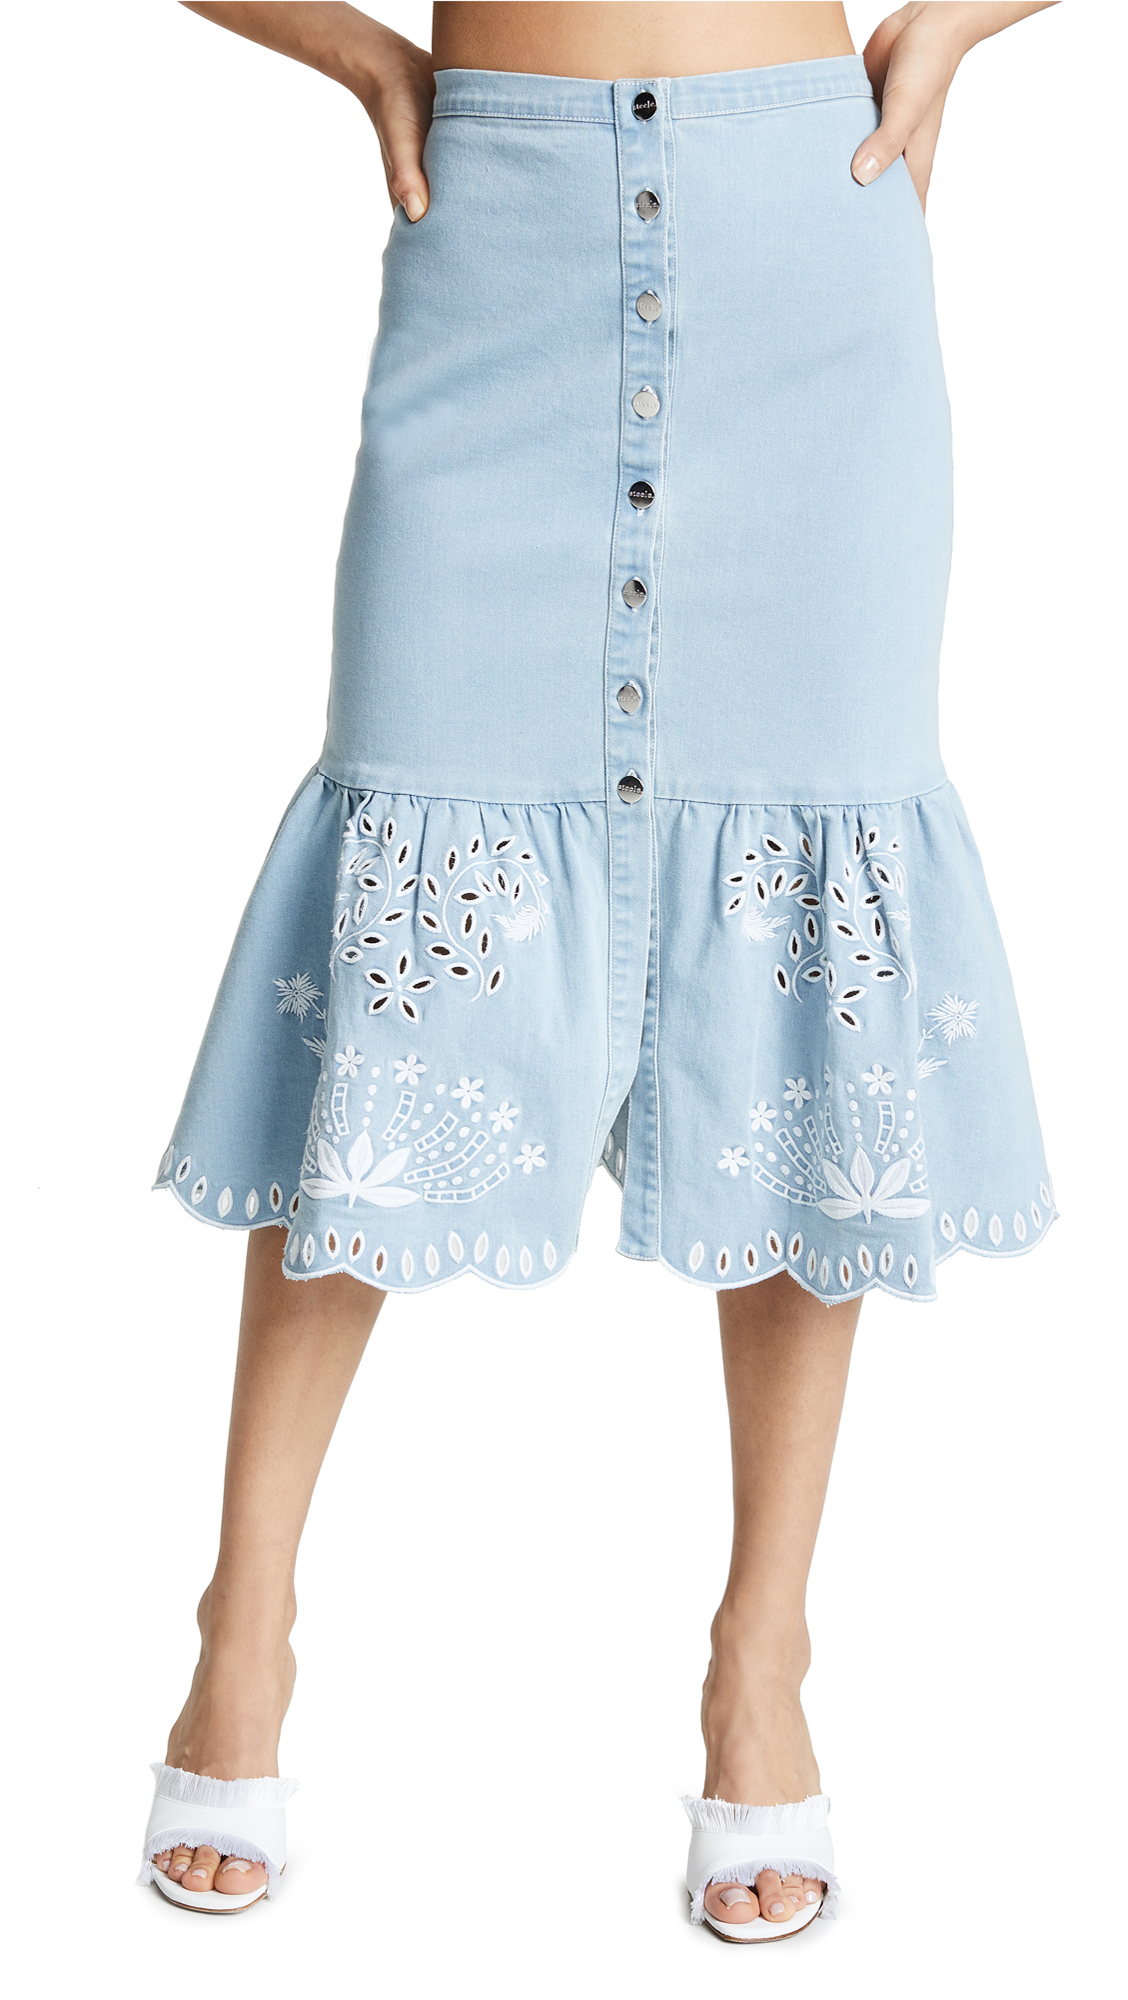 STEELE Cecil Skirt in Blue Wash